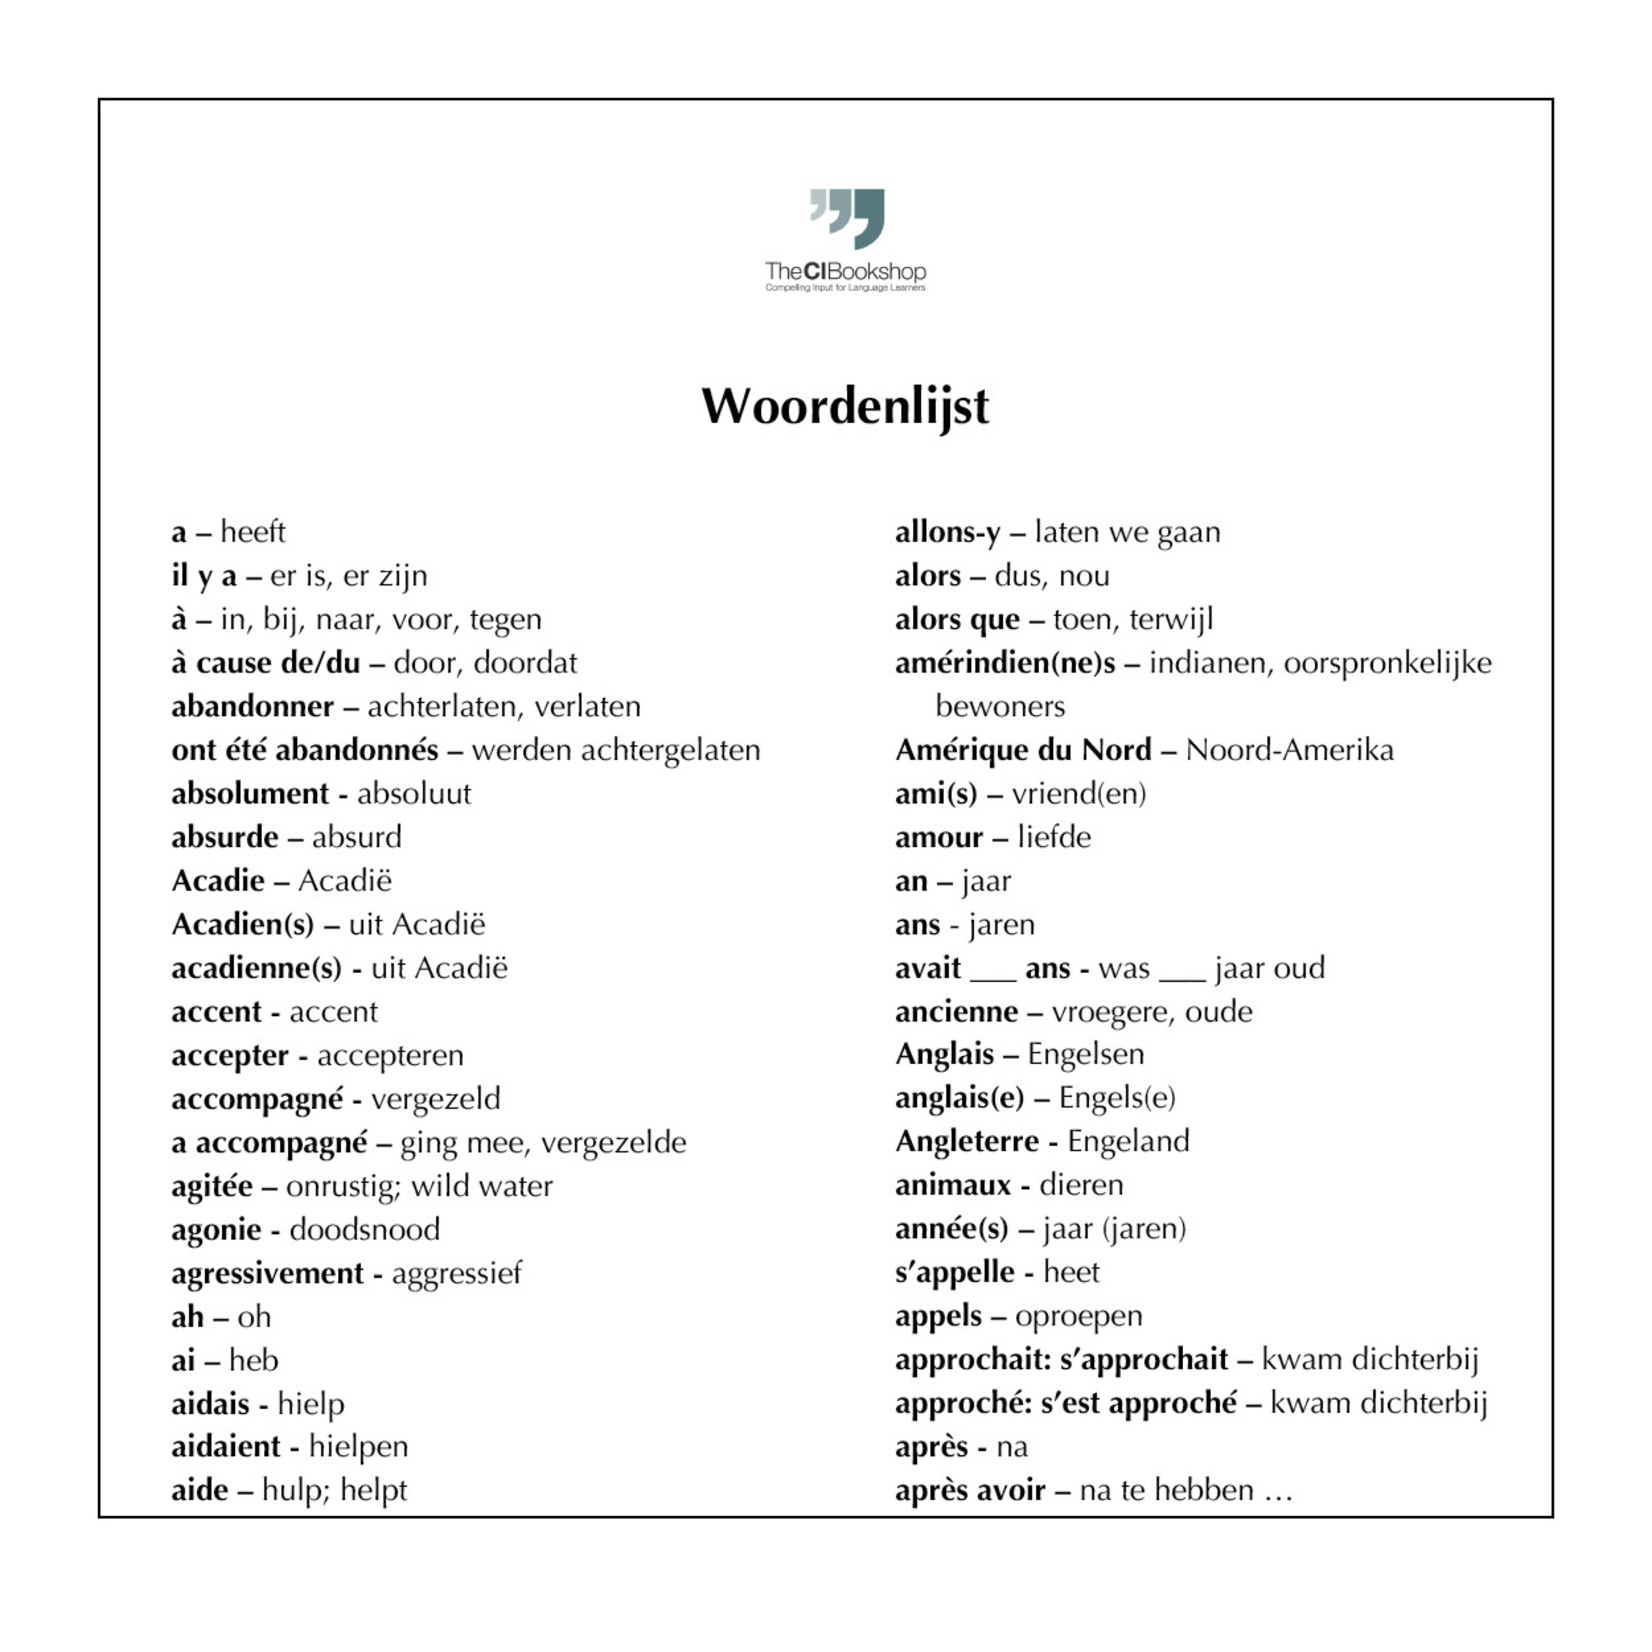 Dutch glossary for Le nouvel Houdini